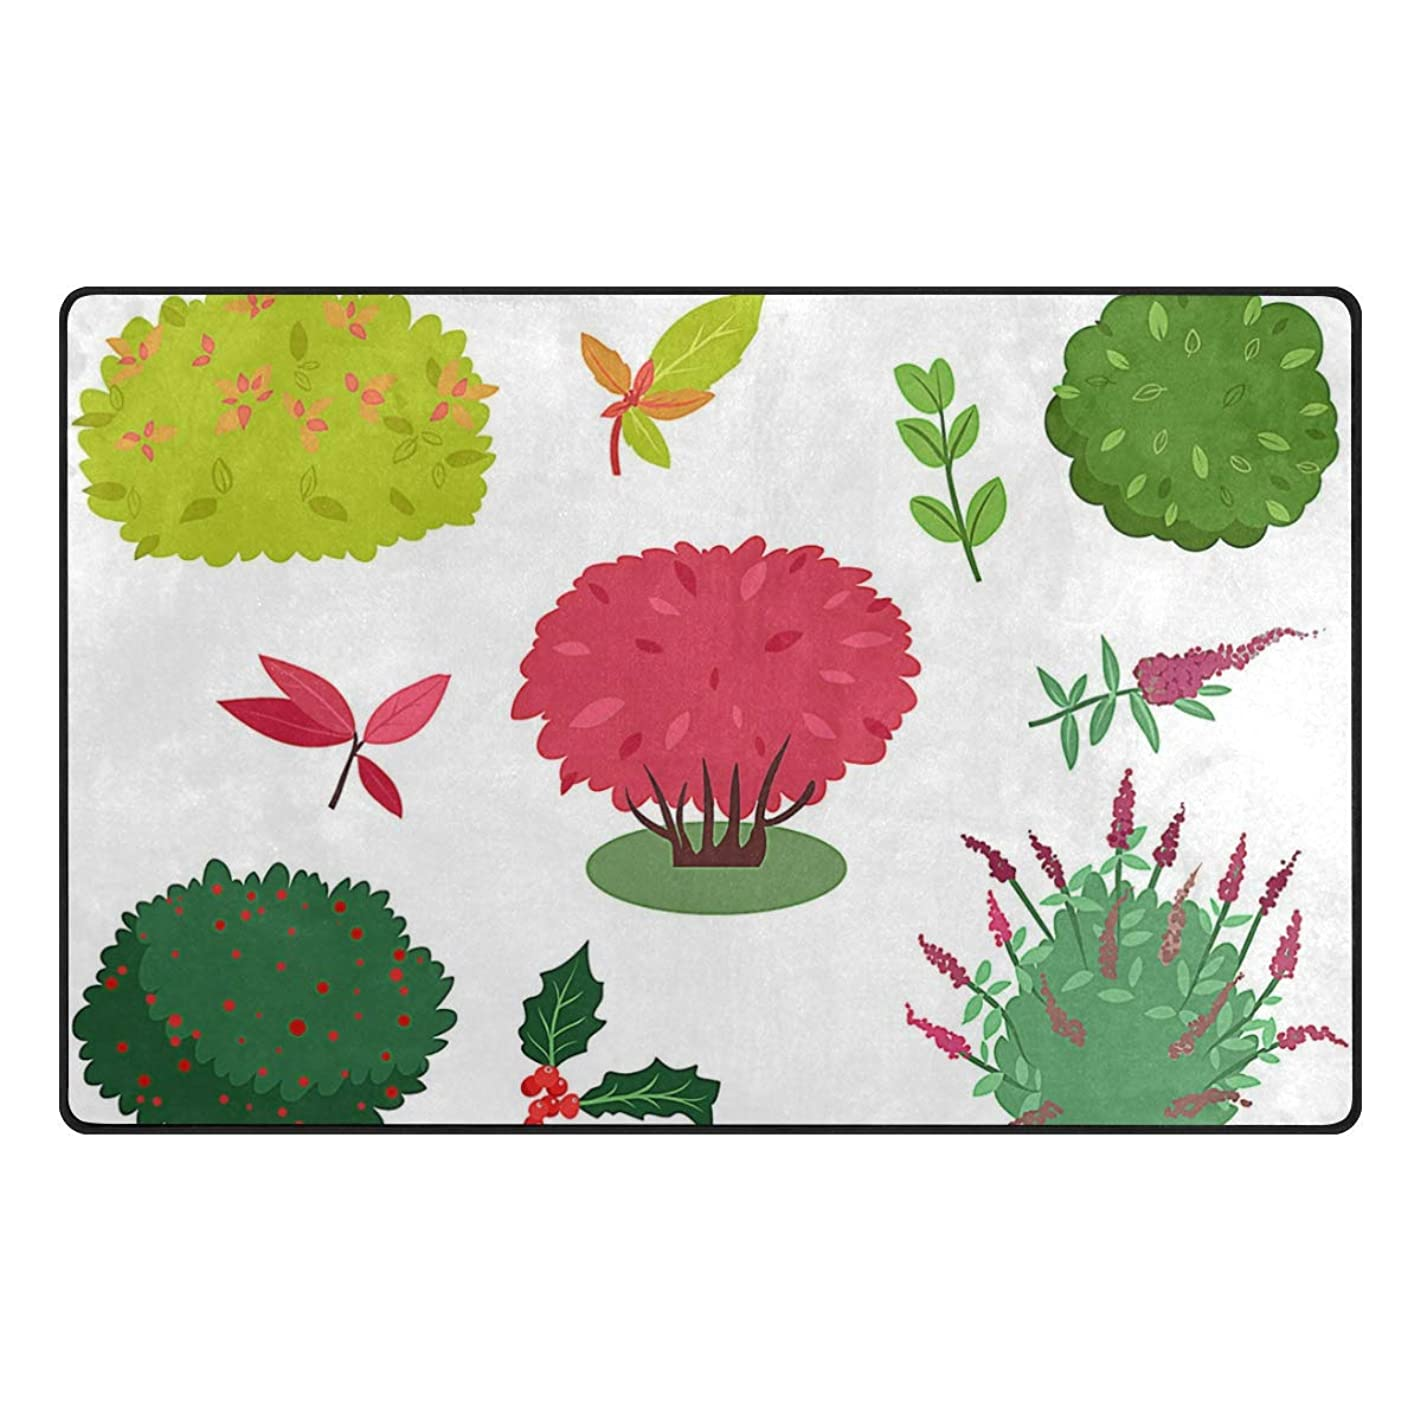 pengyong Bush Branches Non-Slip Floor Mat Home Decor Door Carpet Entry Rug Door Mat for Outdoor/Indoor Uses